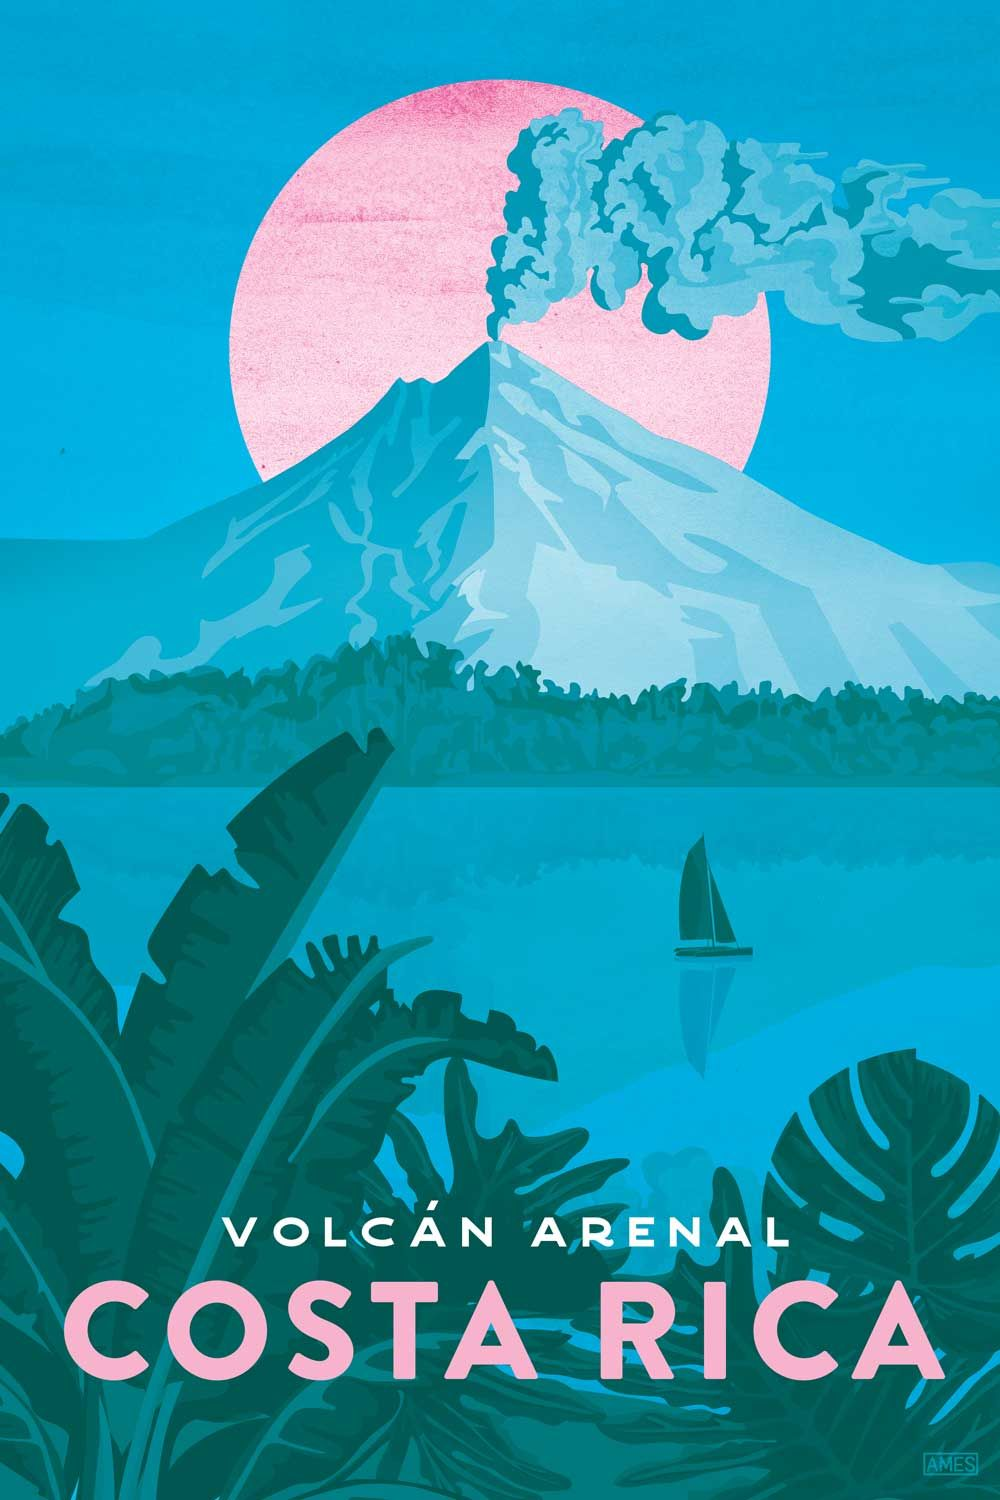 Costa Rica Travel Poster Central American Prints Missy Ames Retro Travel Poster Poster Prints Vintage Travel Posters